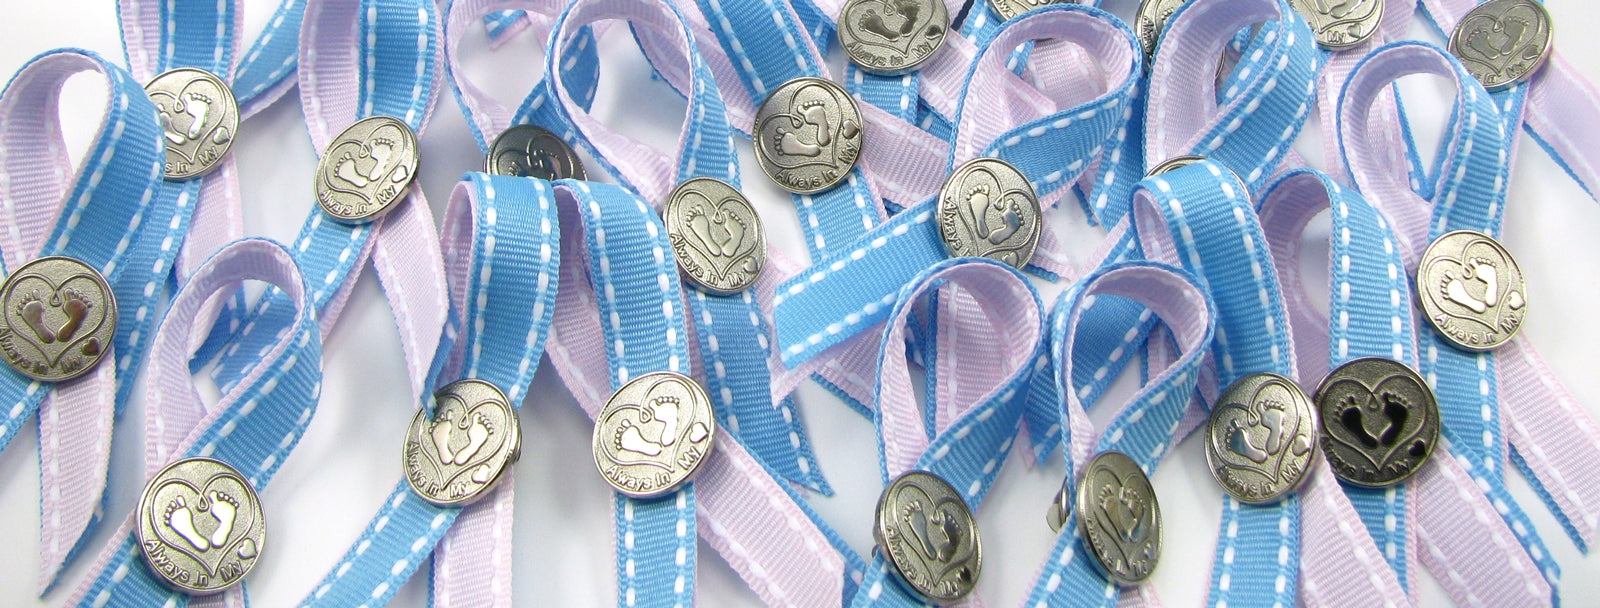 Pregnancy & Infant Loss Awareness Fabric Ribbon Pins- Limited